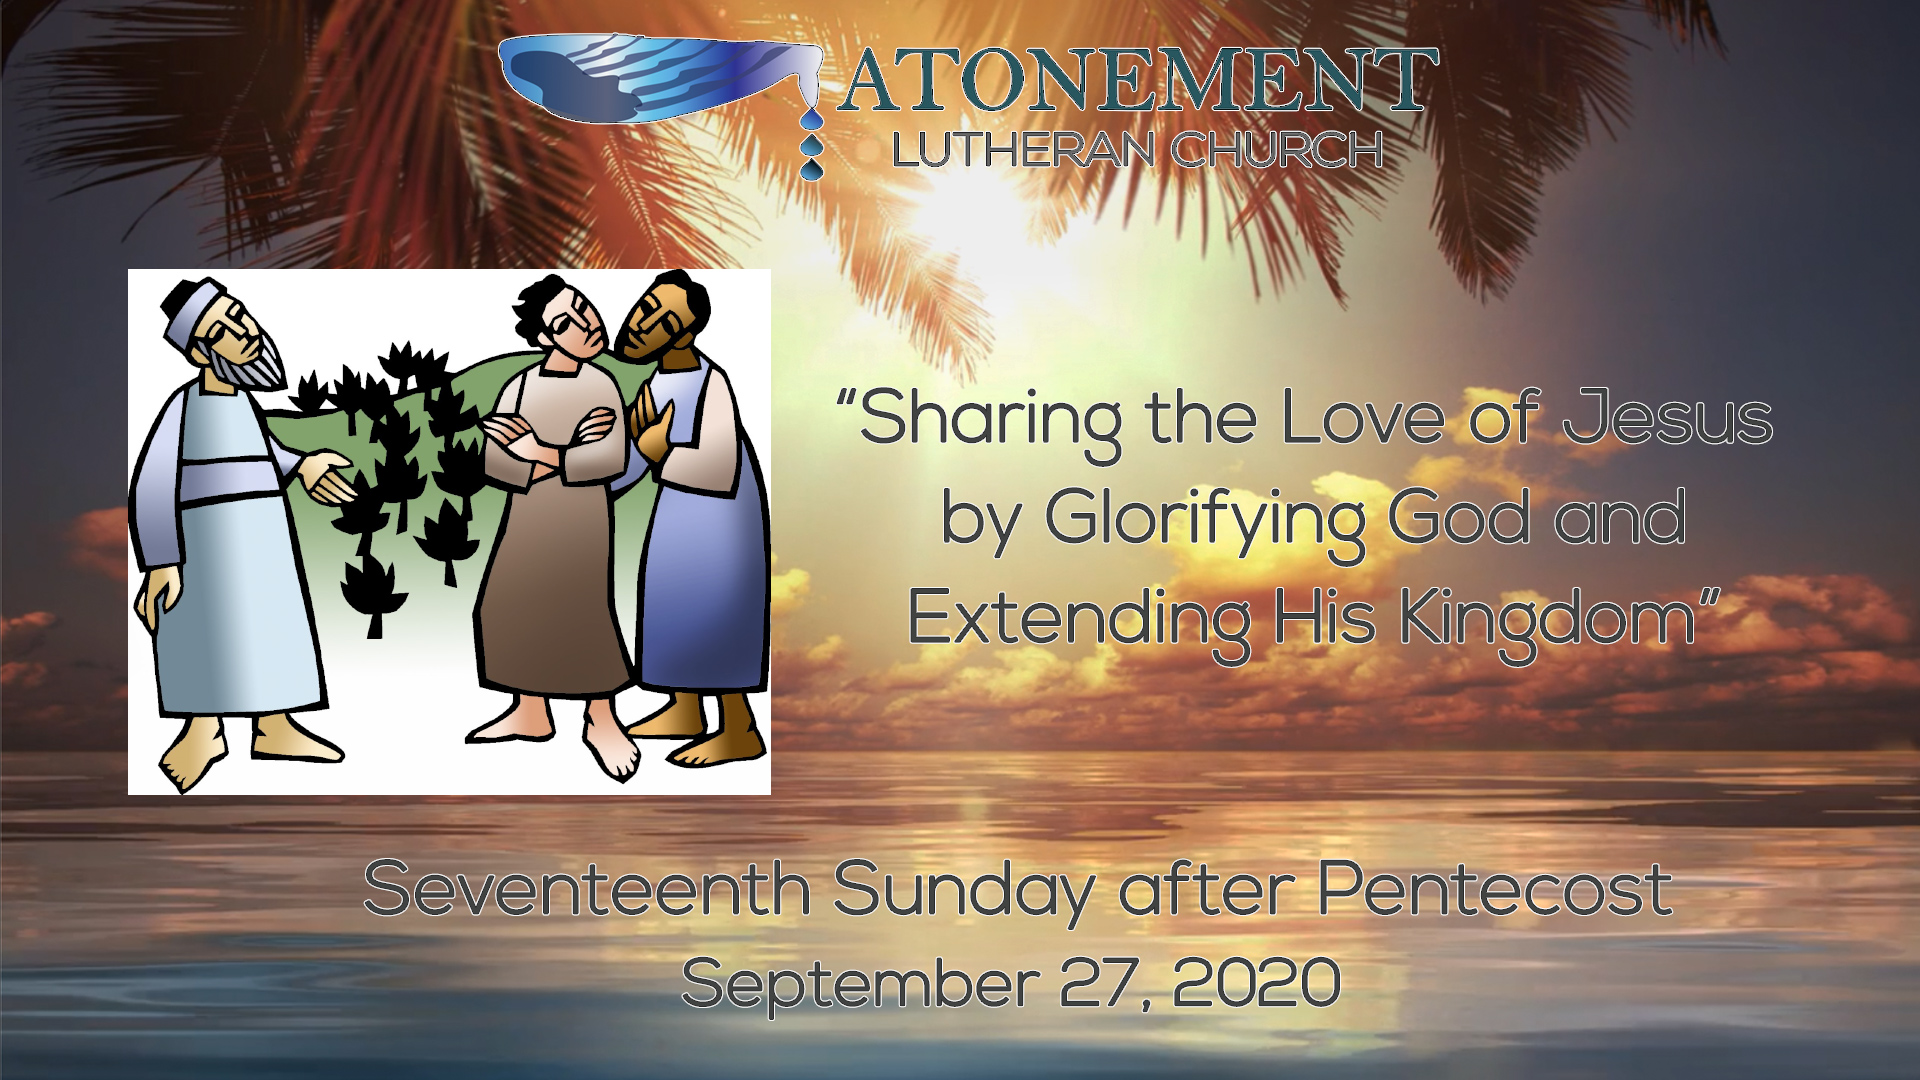 Sept. 27, 2020, 17th Sunday after Pentecost